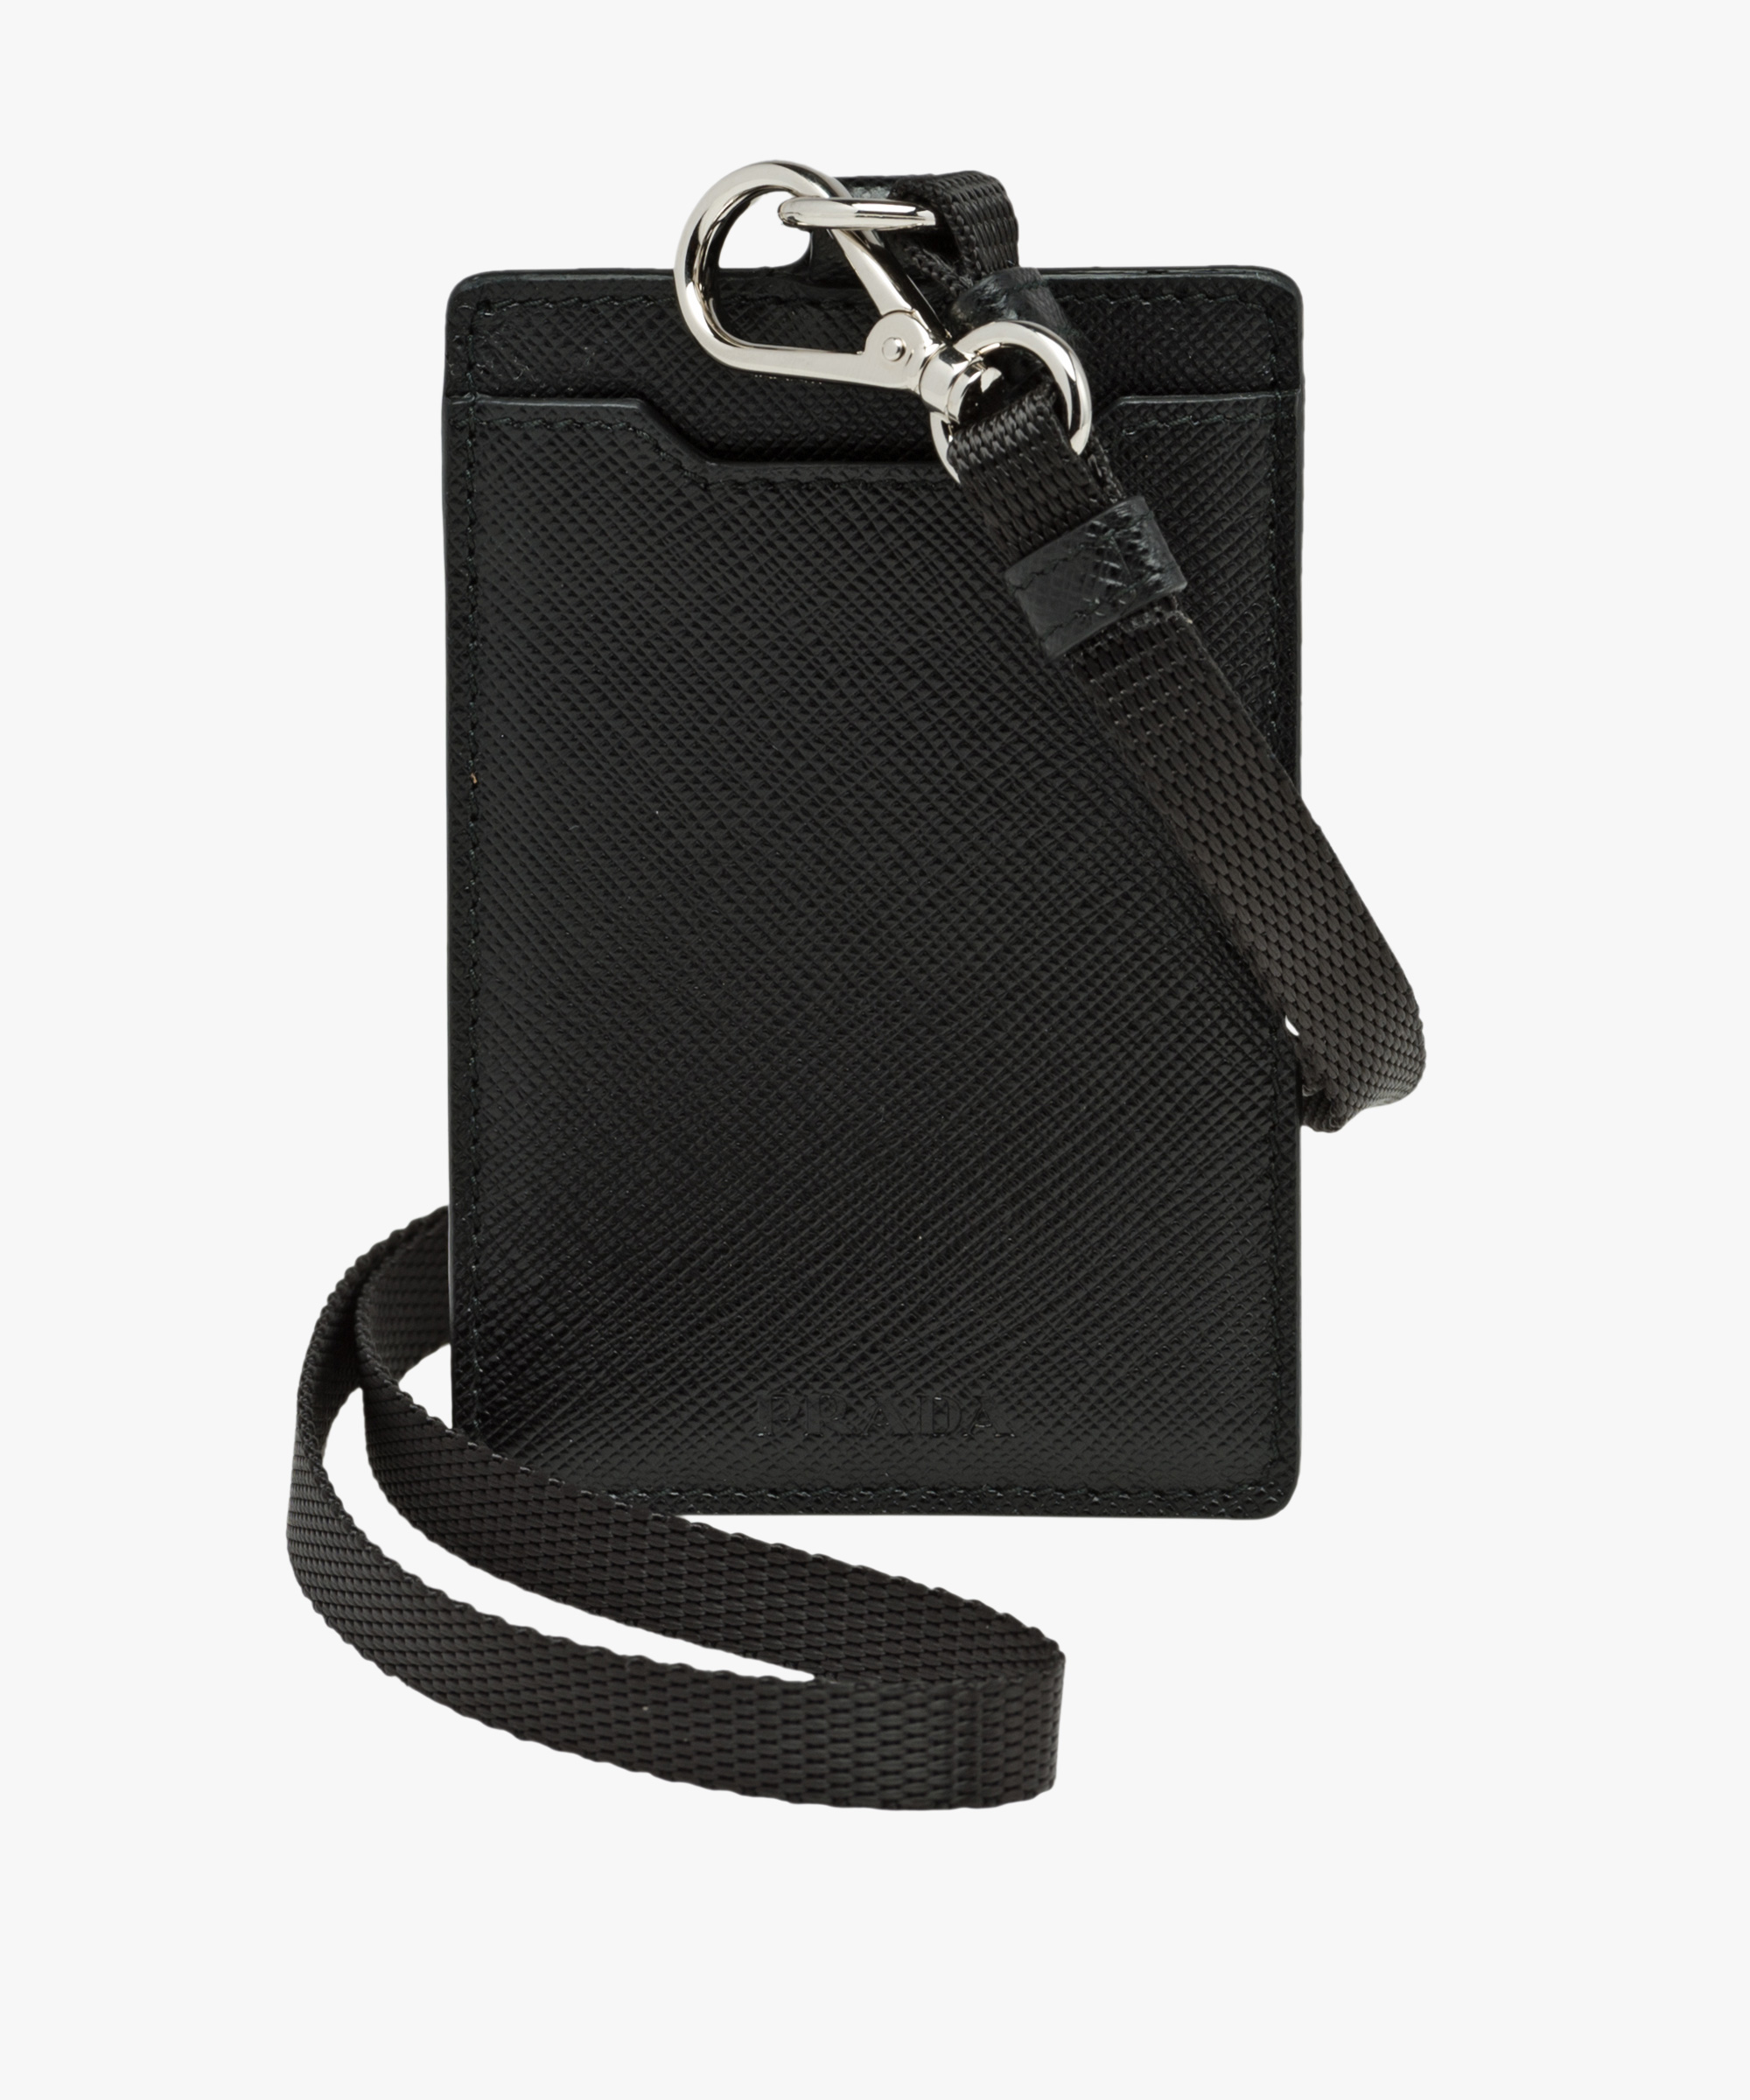 4d4237075fdf ... Saffiano Leather Badge Holder Prada BLACK ...